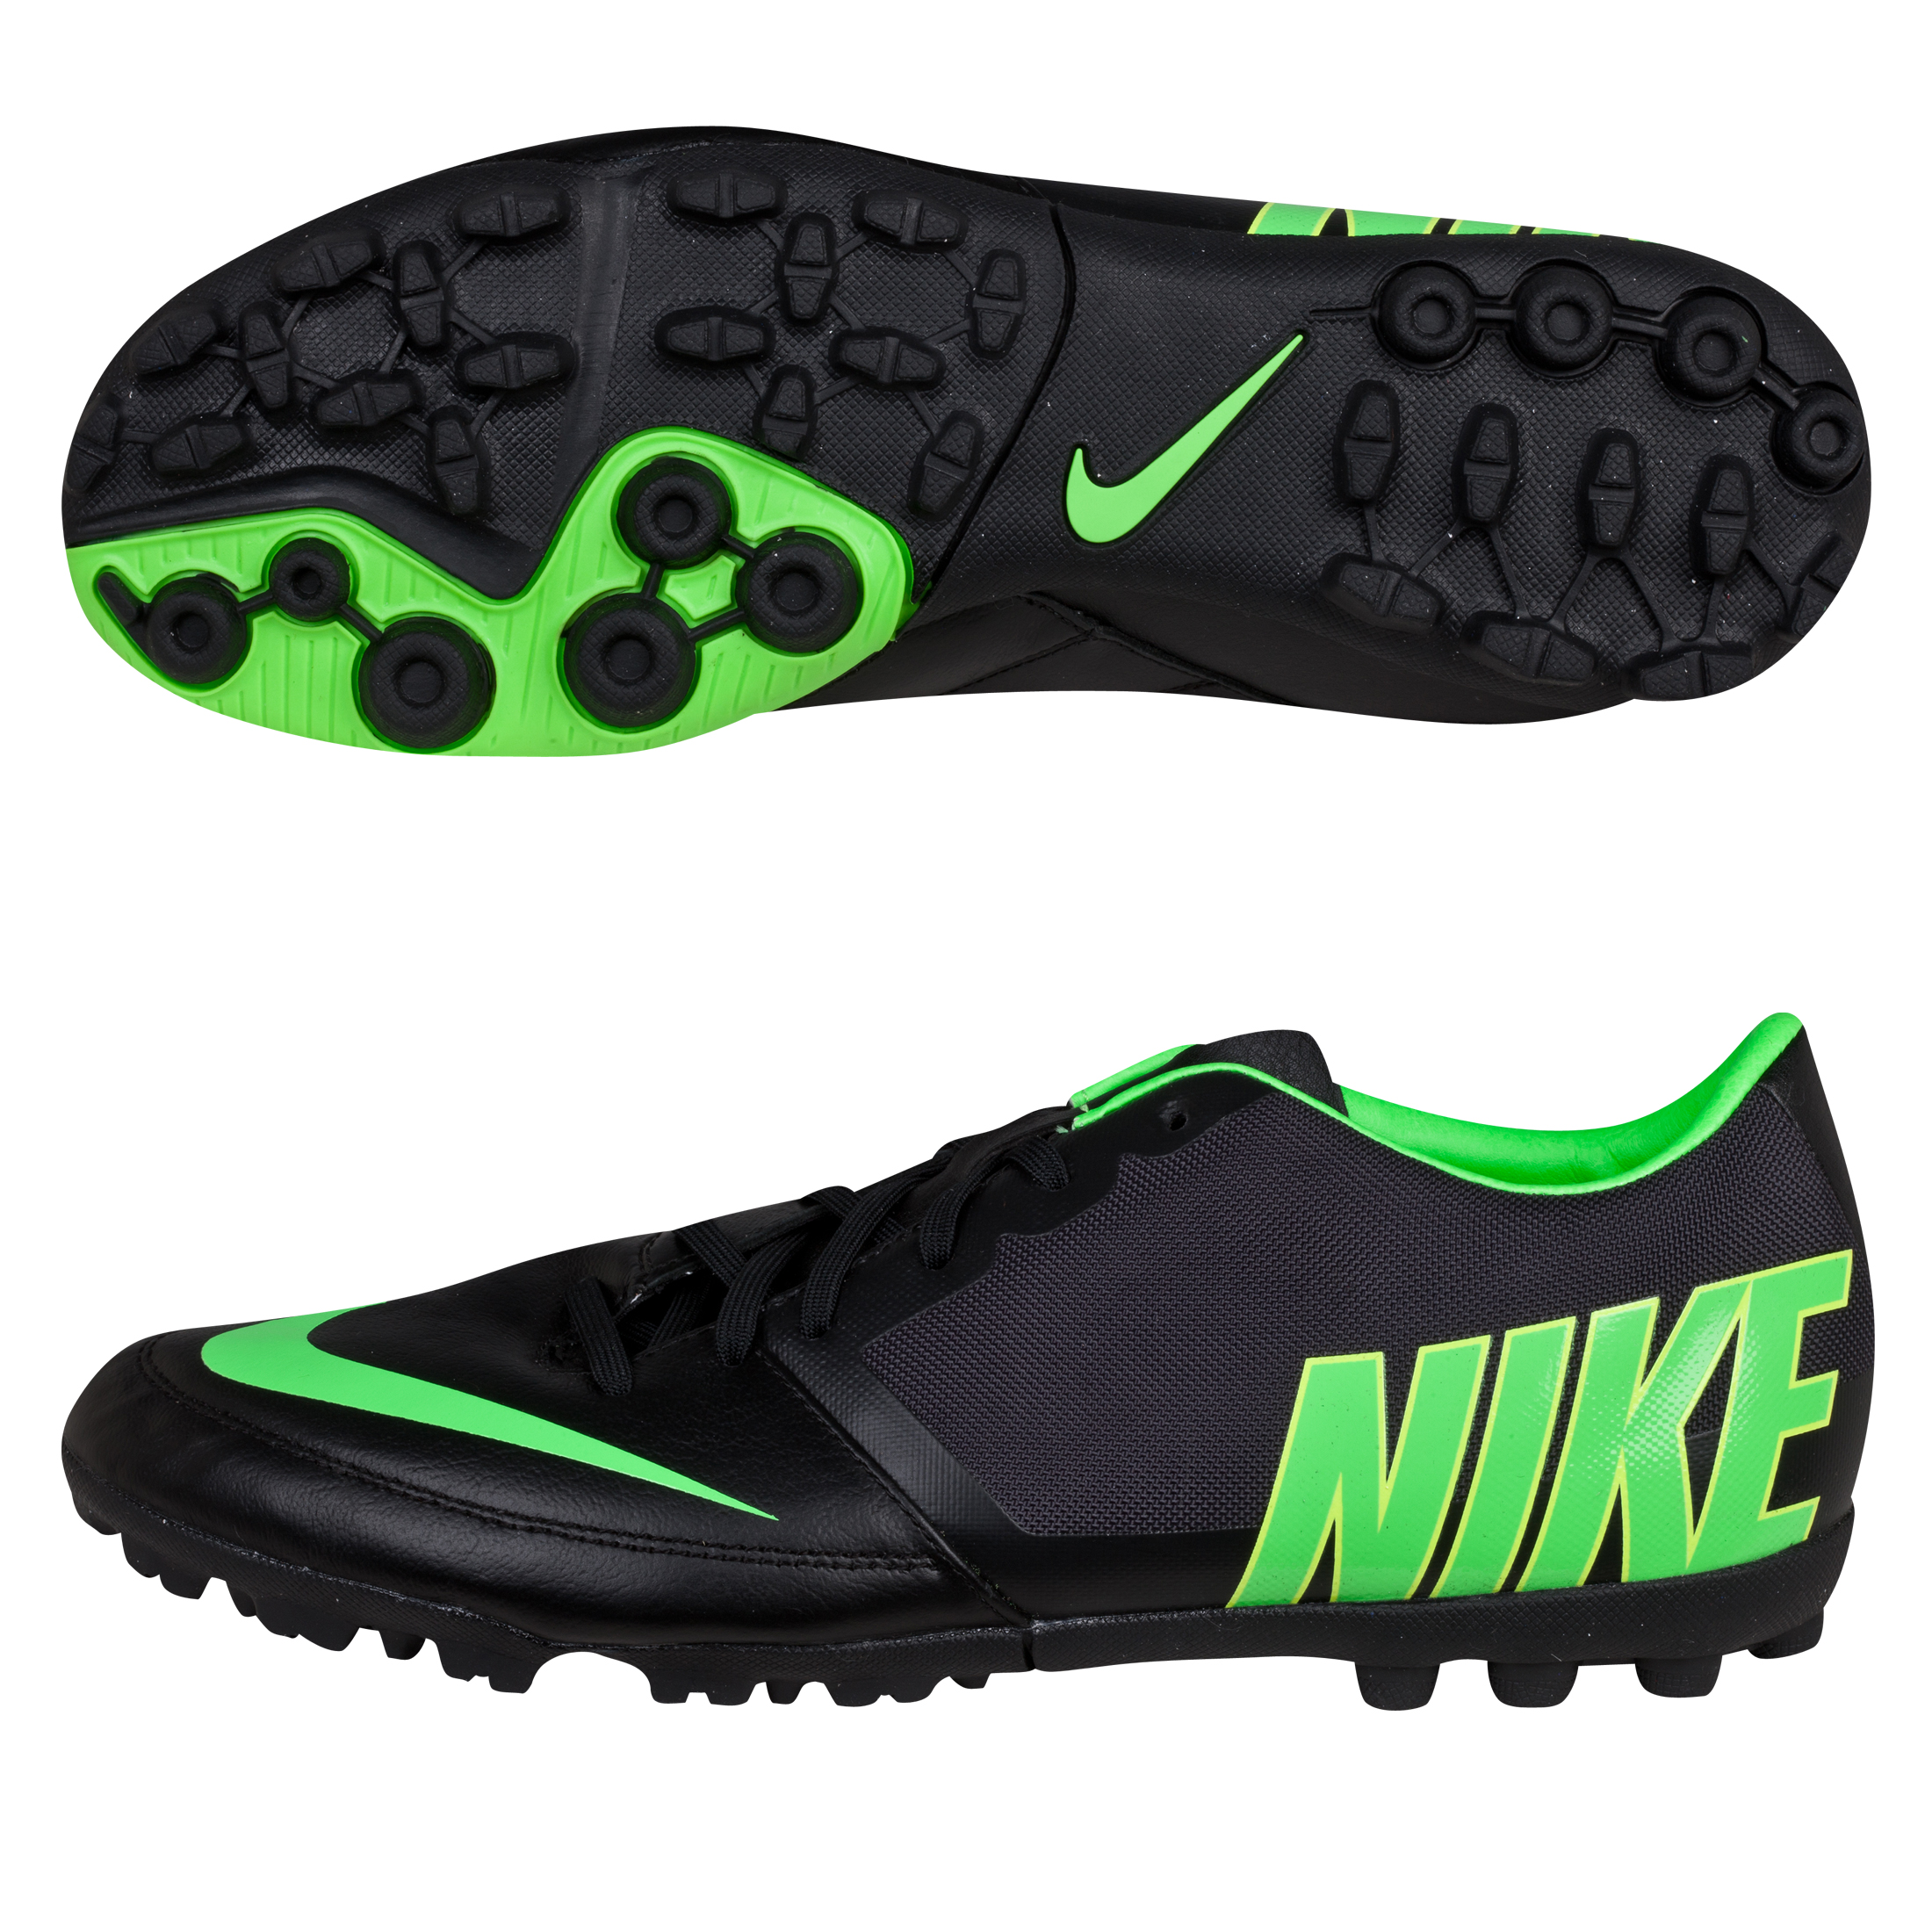 Nike Bomba Pro II Trainers-Black/Electric Green/Dark Charcoal Black